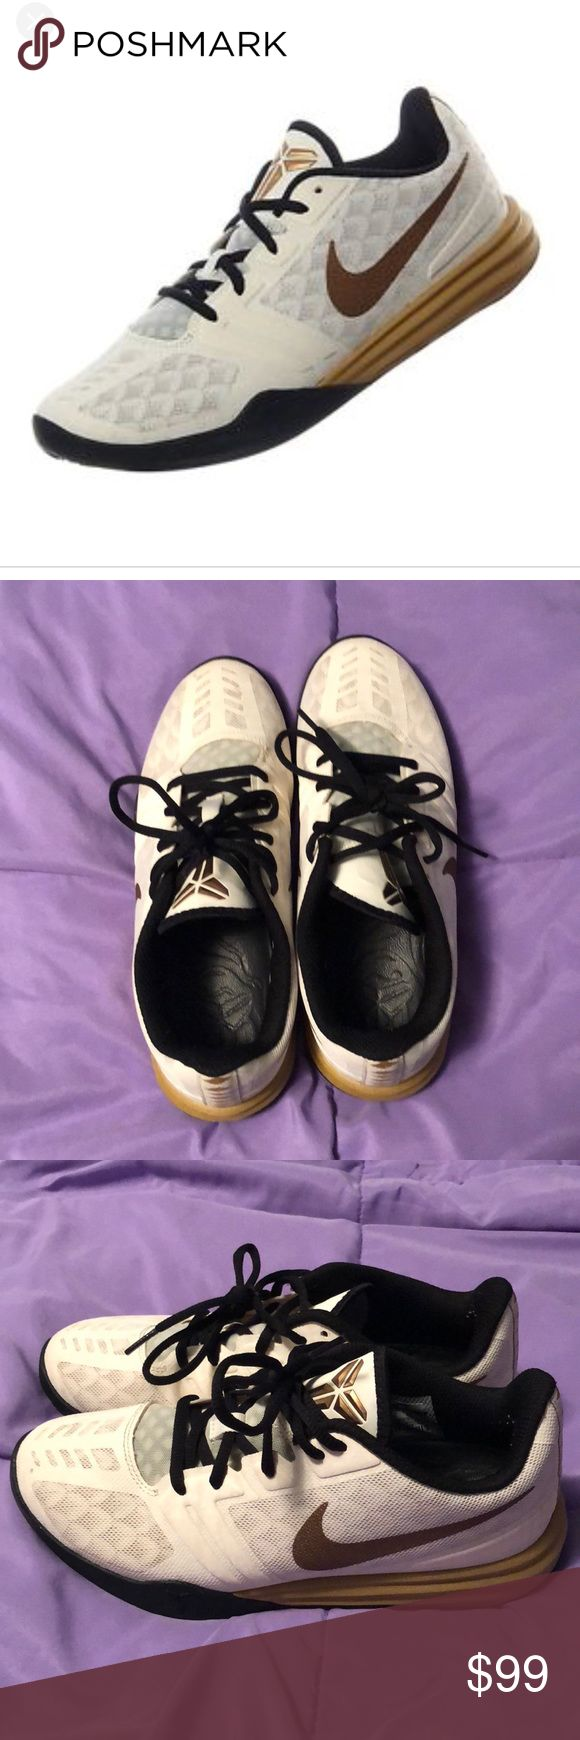 Nike Kobe Bryant Mentality Mens Sneaker Nike Kobe Bryant Mentality Mens Sneaker - White / Black / Gold - 10 (704942-102) size 7. New without box. Nike Shoes Sneakers